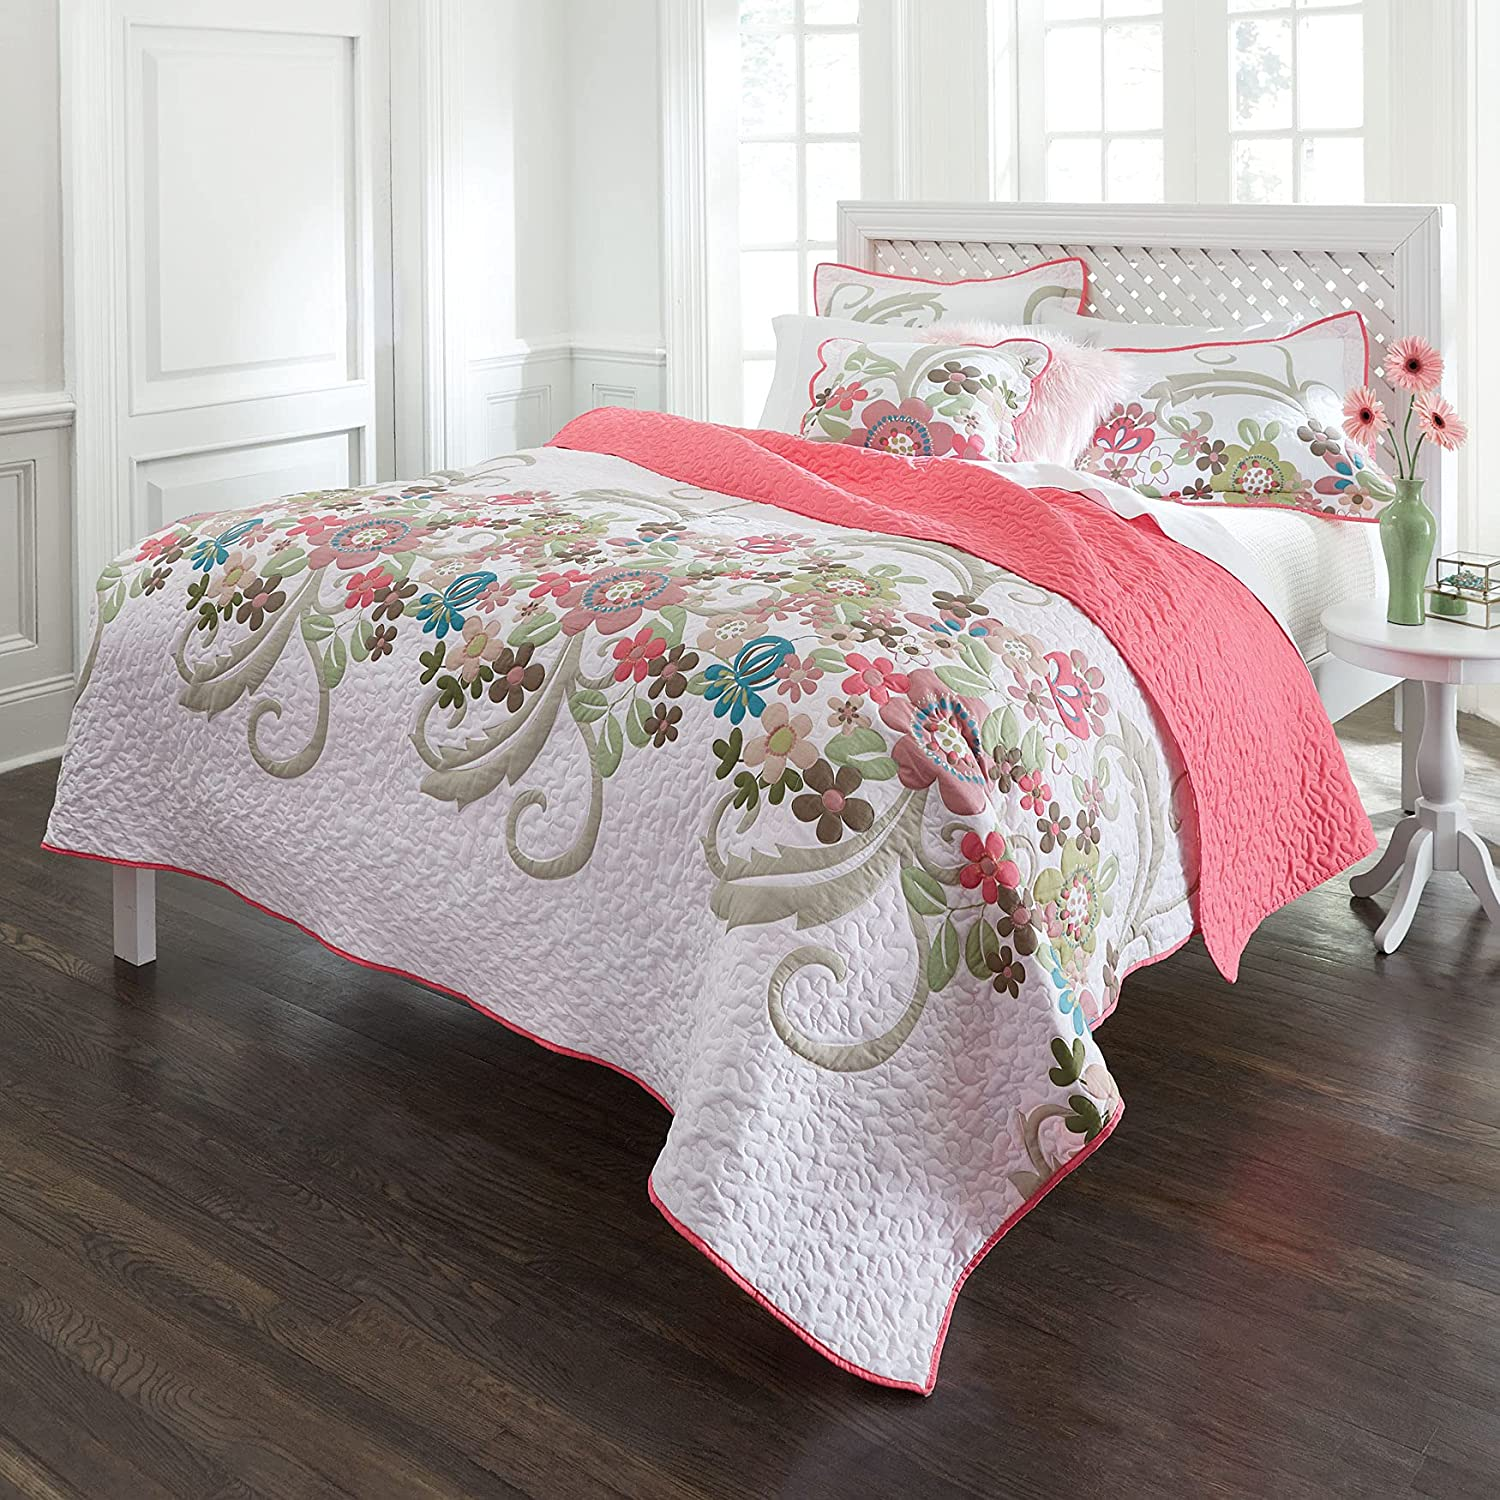 BrylaneHome Jardin Floral Spring Quilt Queen Full We OFFer at cheap prices White wholesale - Pink